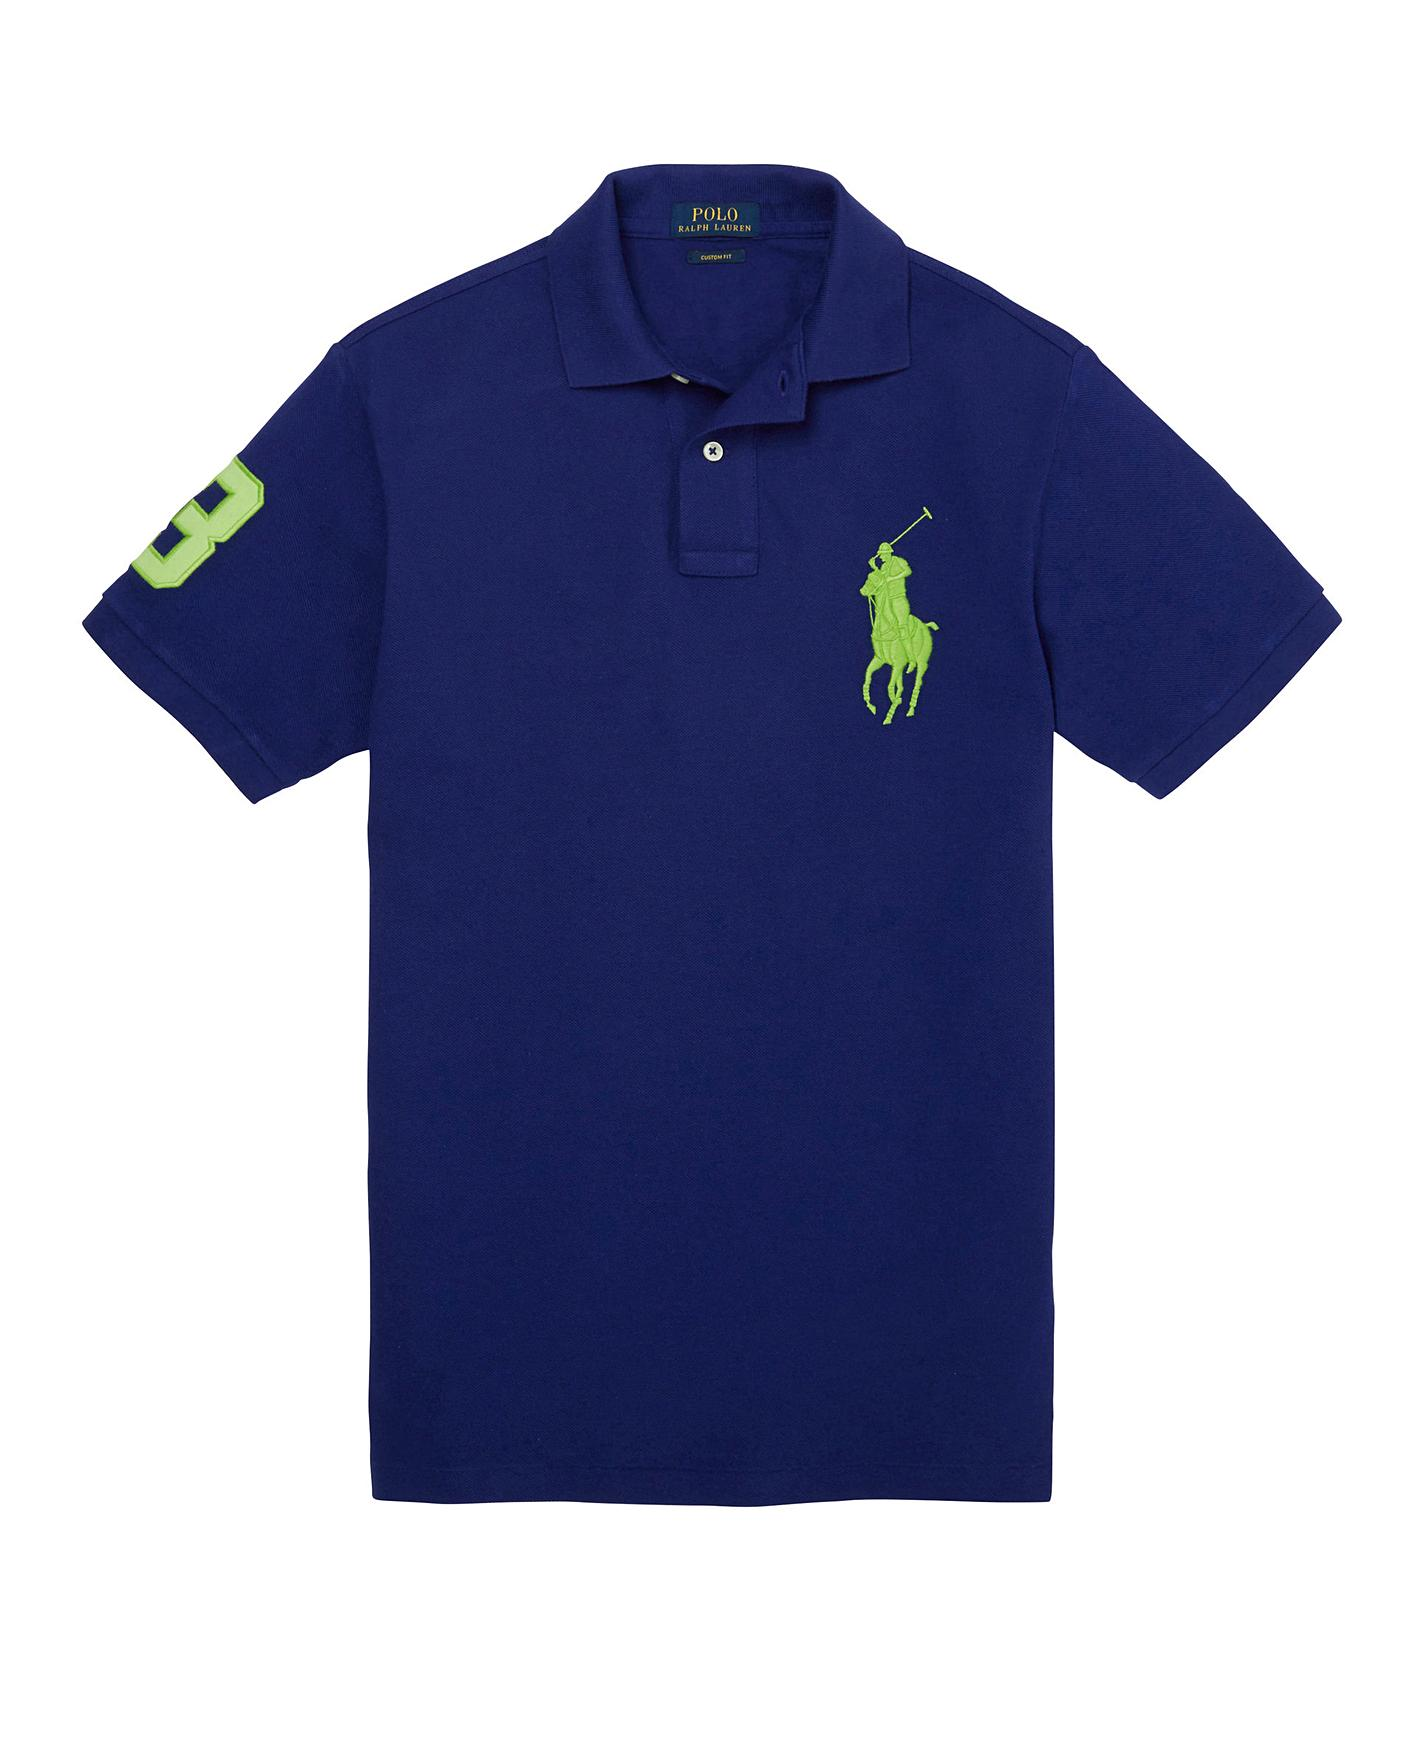 Polo Ralph Lauren New Kids Children/'s Big Pony Short Sleeve Polo Shirts